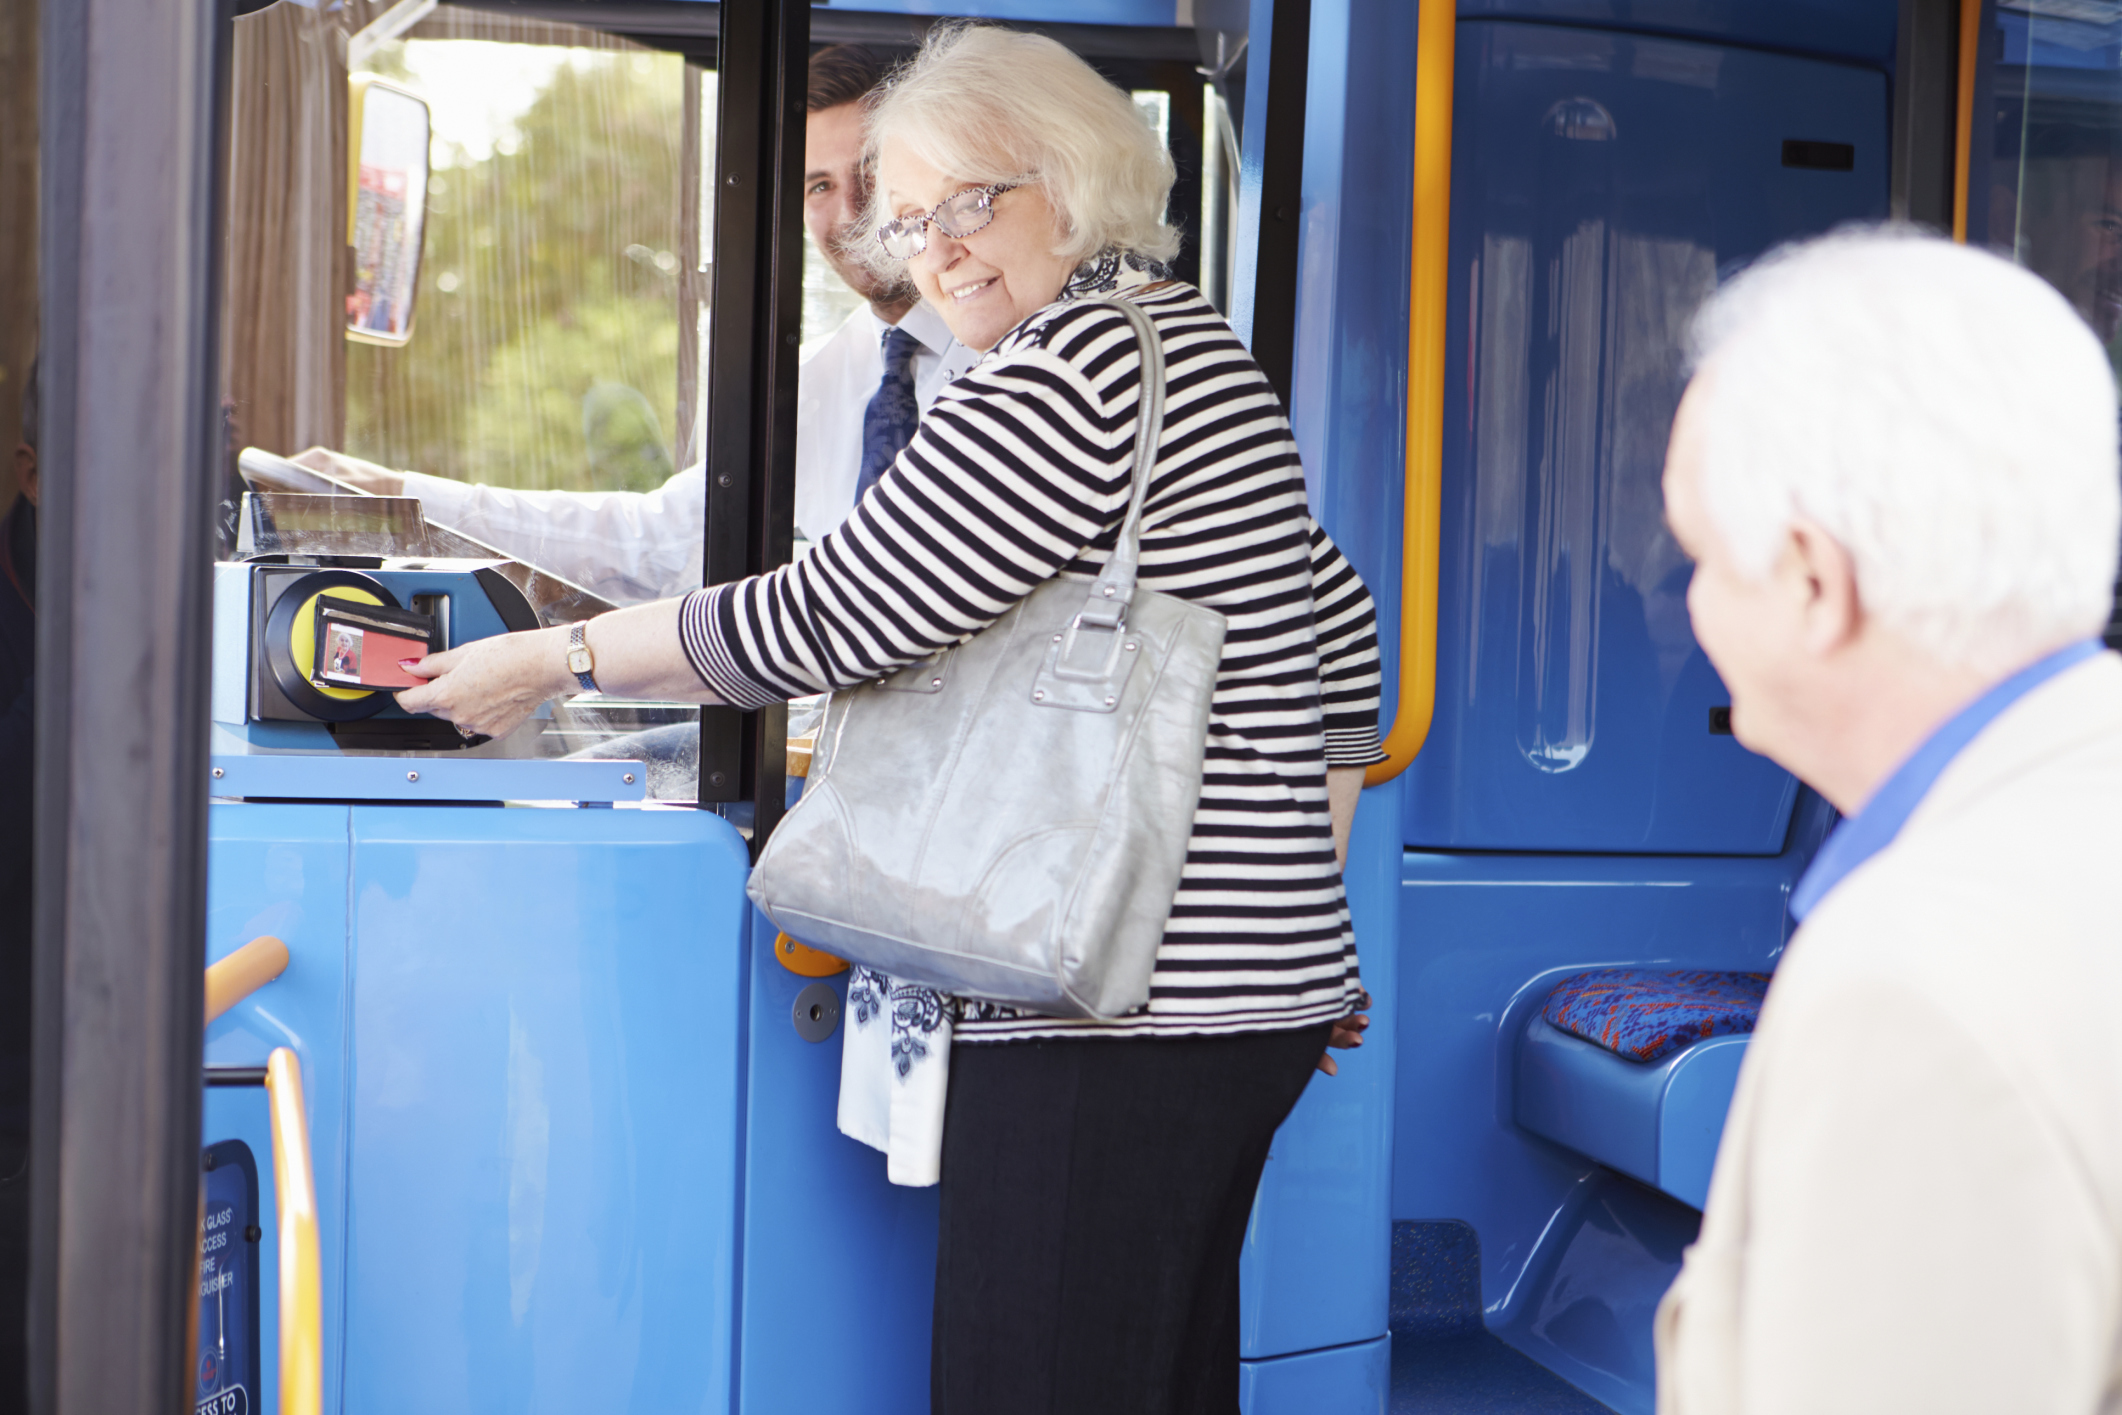 Bus passes will continue to be issued